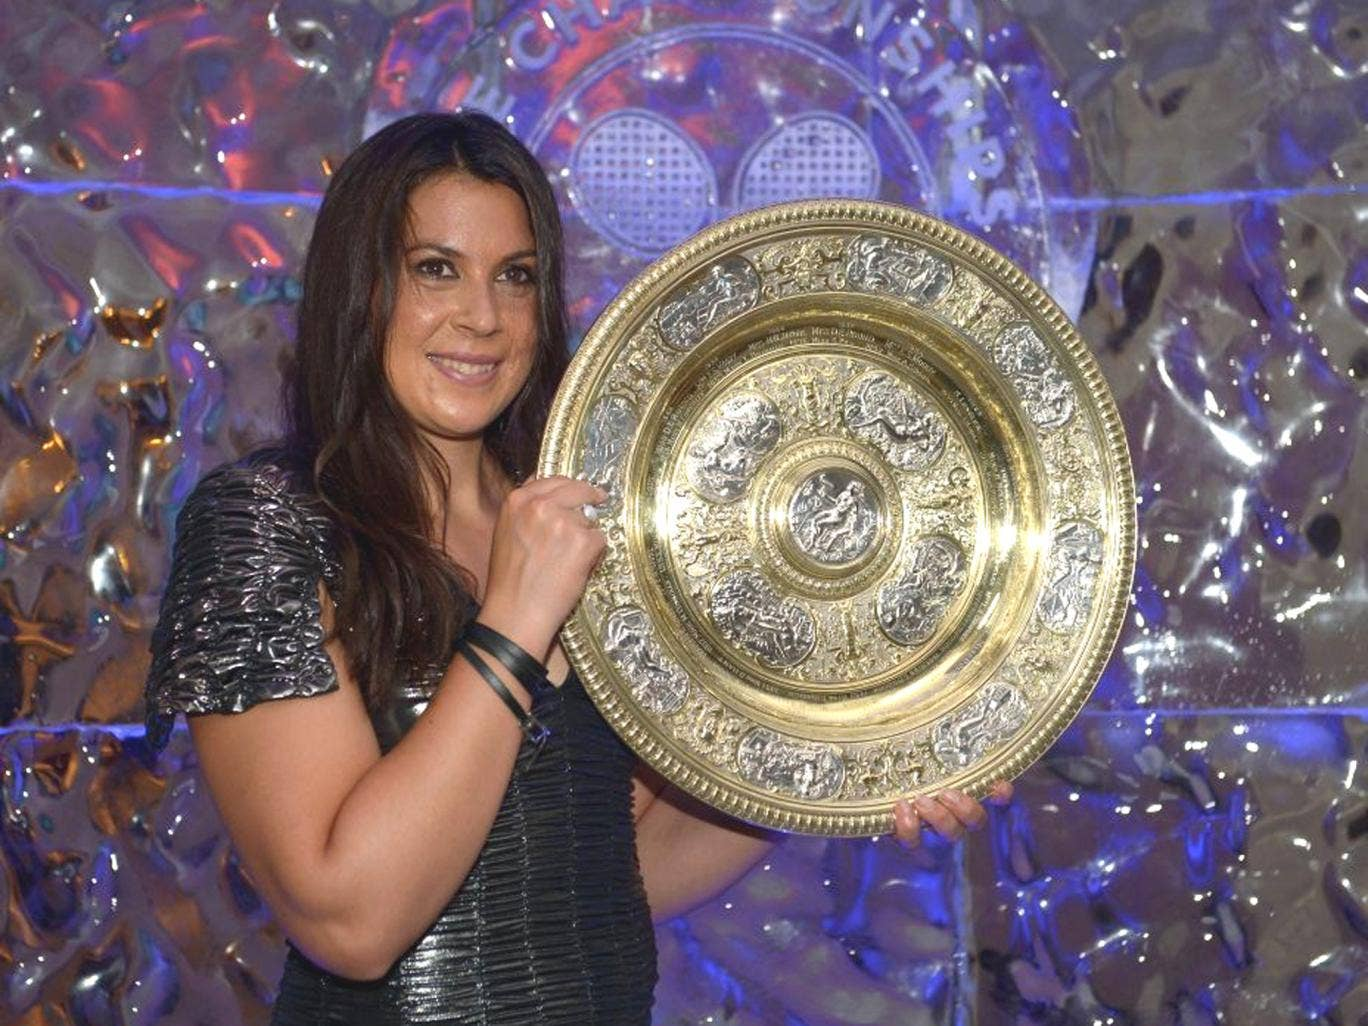 """More than 600 people have complained to the BBC after presenter John Inverdale suggested Wimbledon winner Marion Bartoli was """"never going to be a looker"""""""